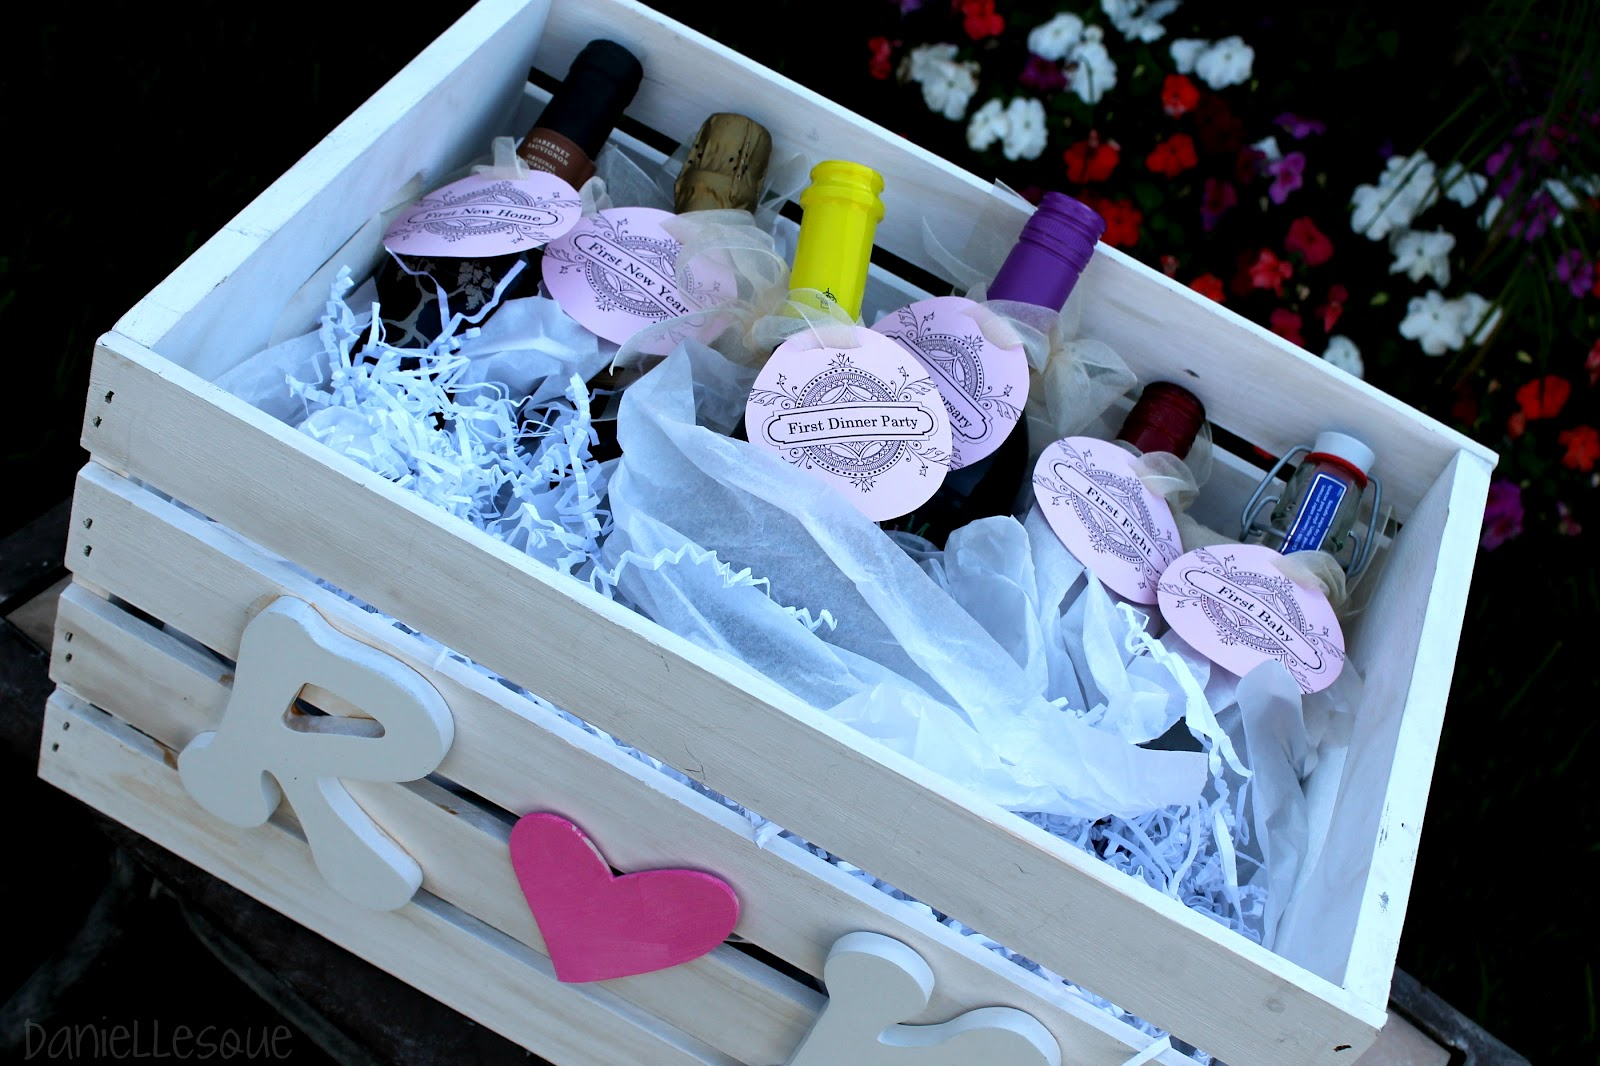 Bridal Shower Wine Gift Basket Ideas : daniellesque: Bridal Shower Gift: Basket of Firsts